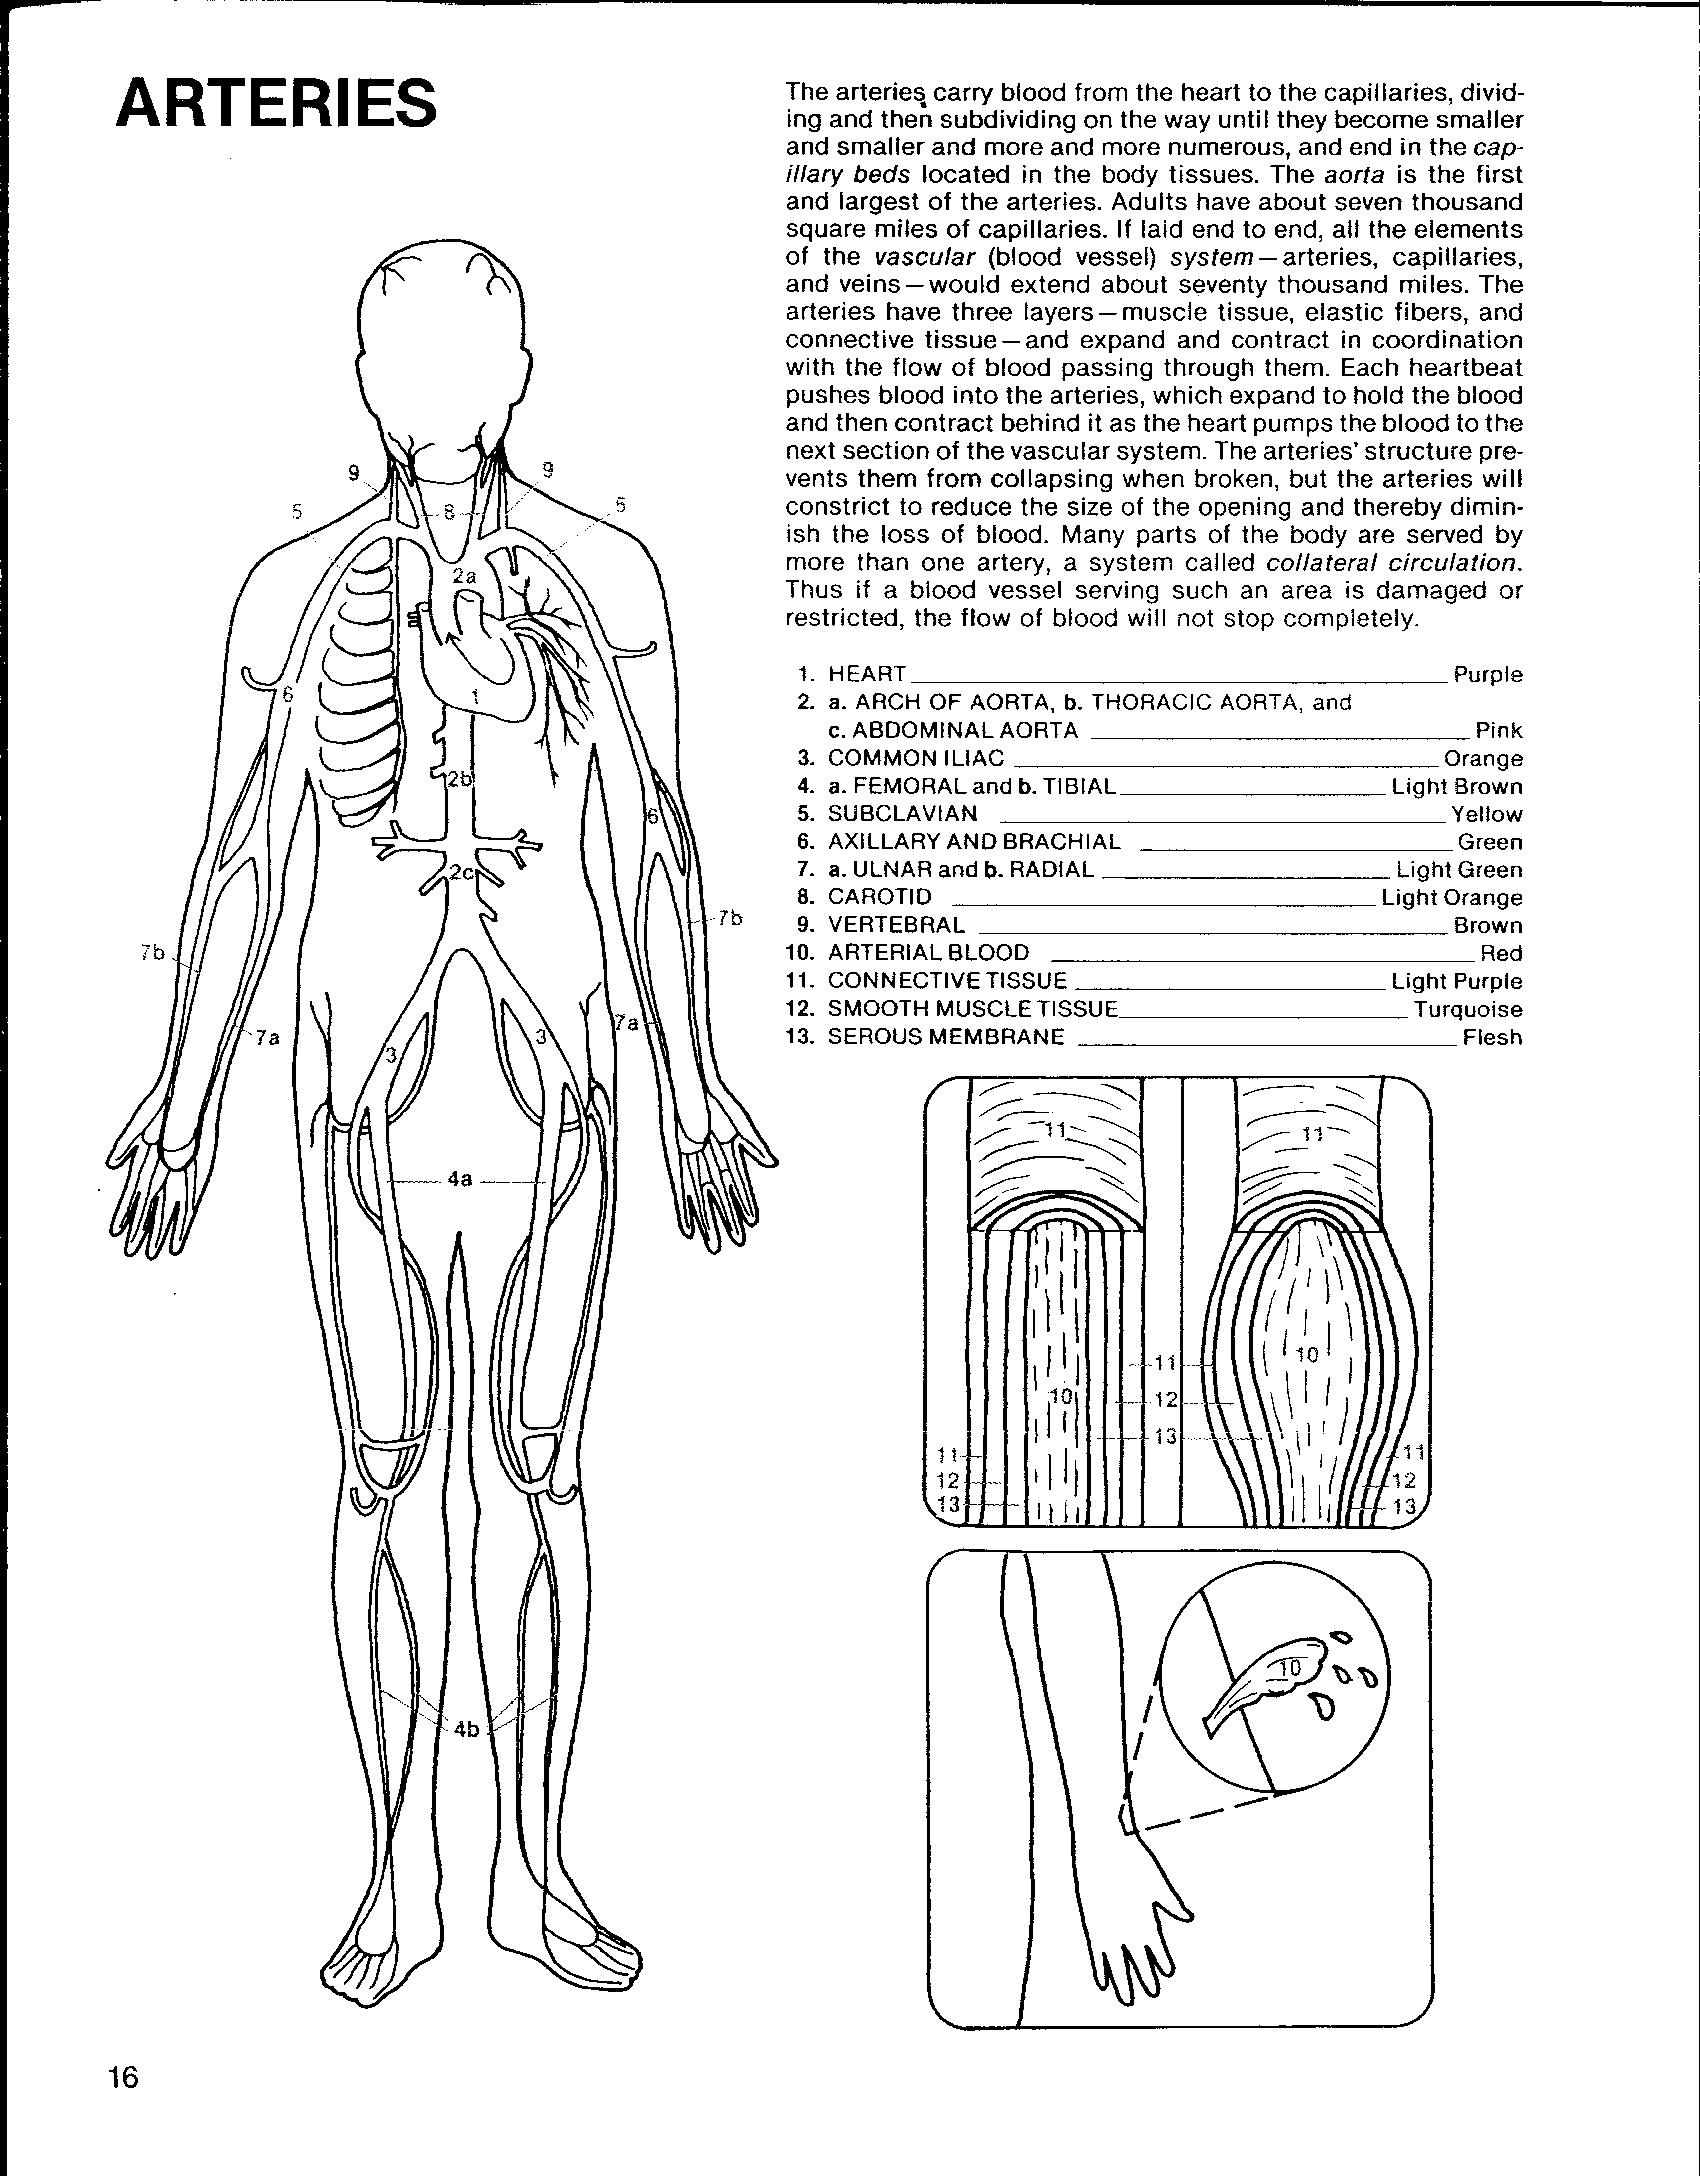 Human Circulatory System Worksheet Pictures To Pin On